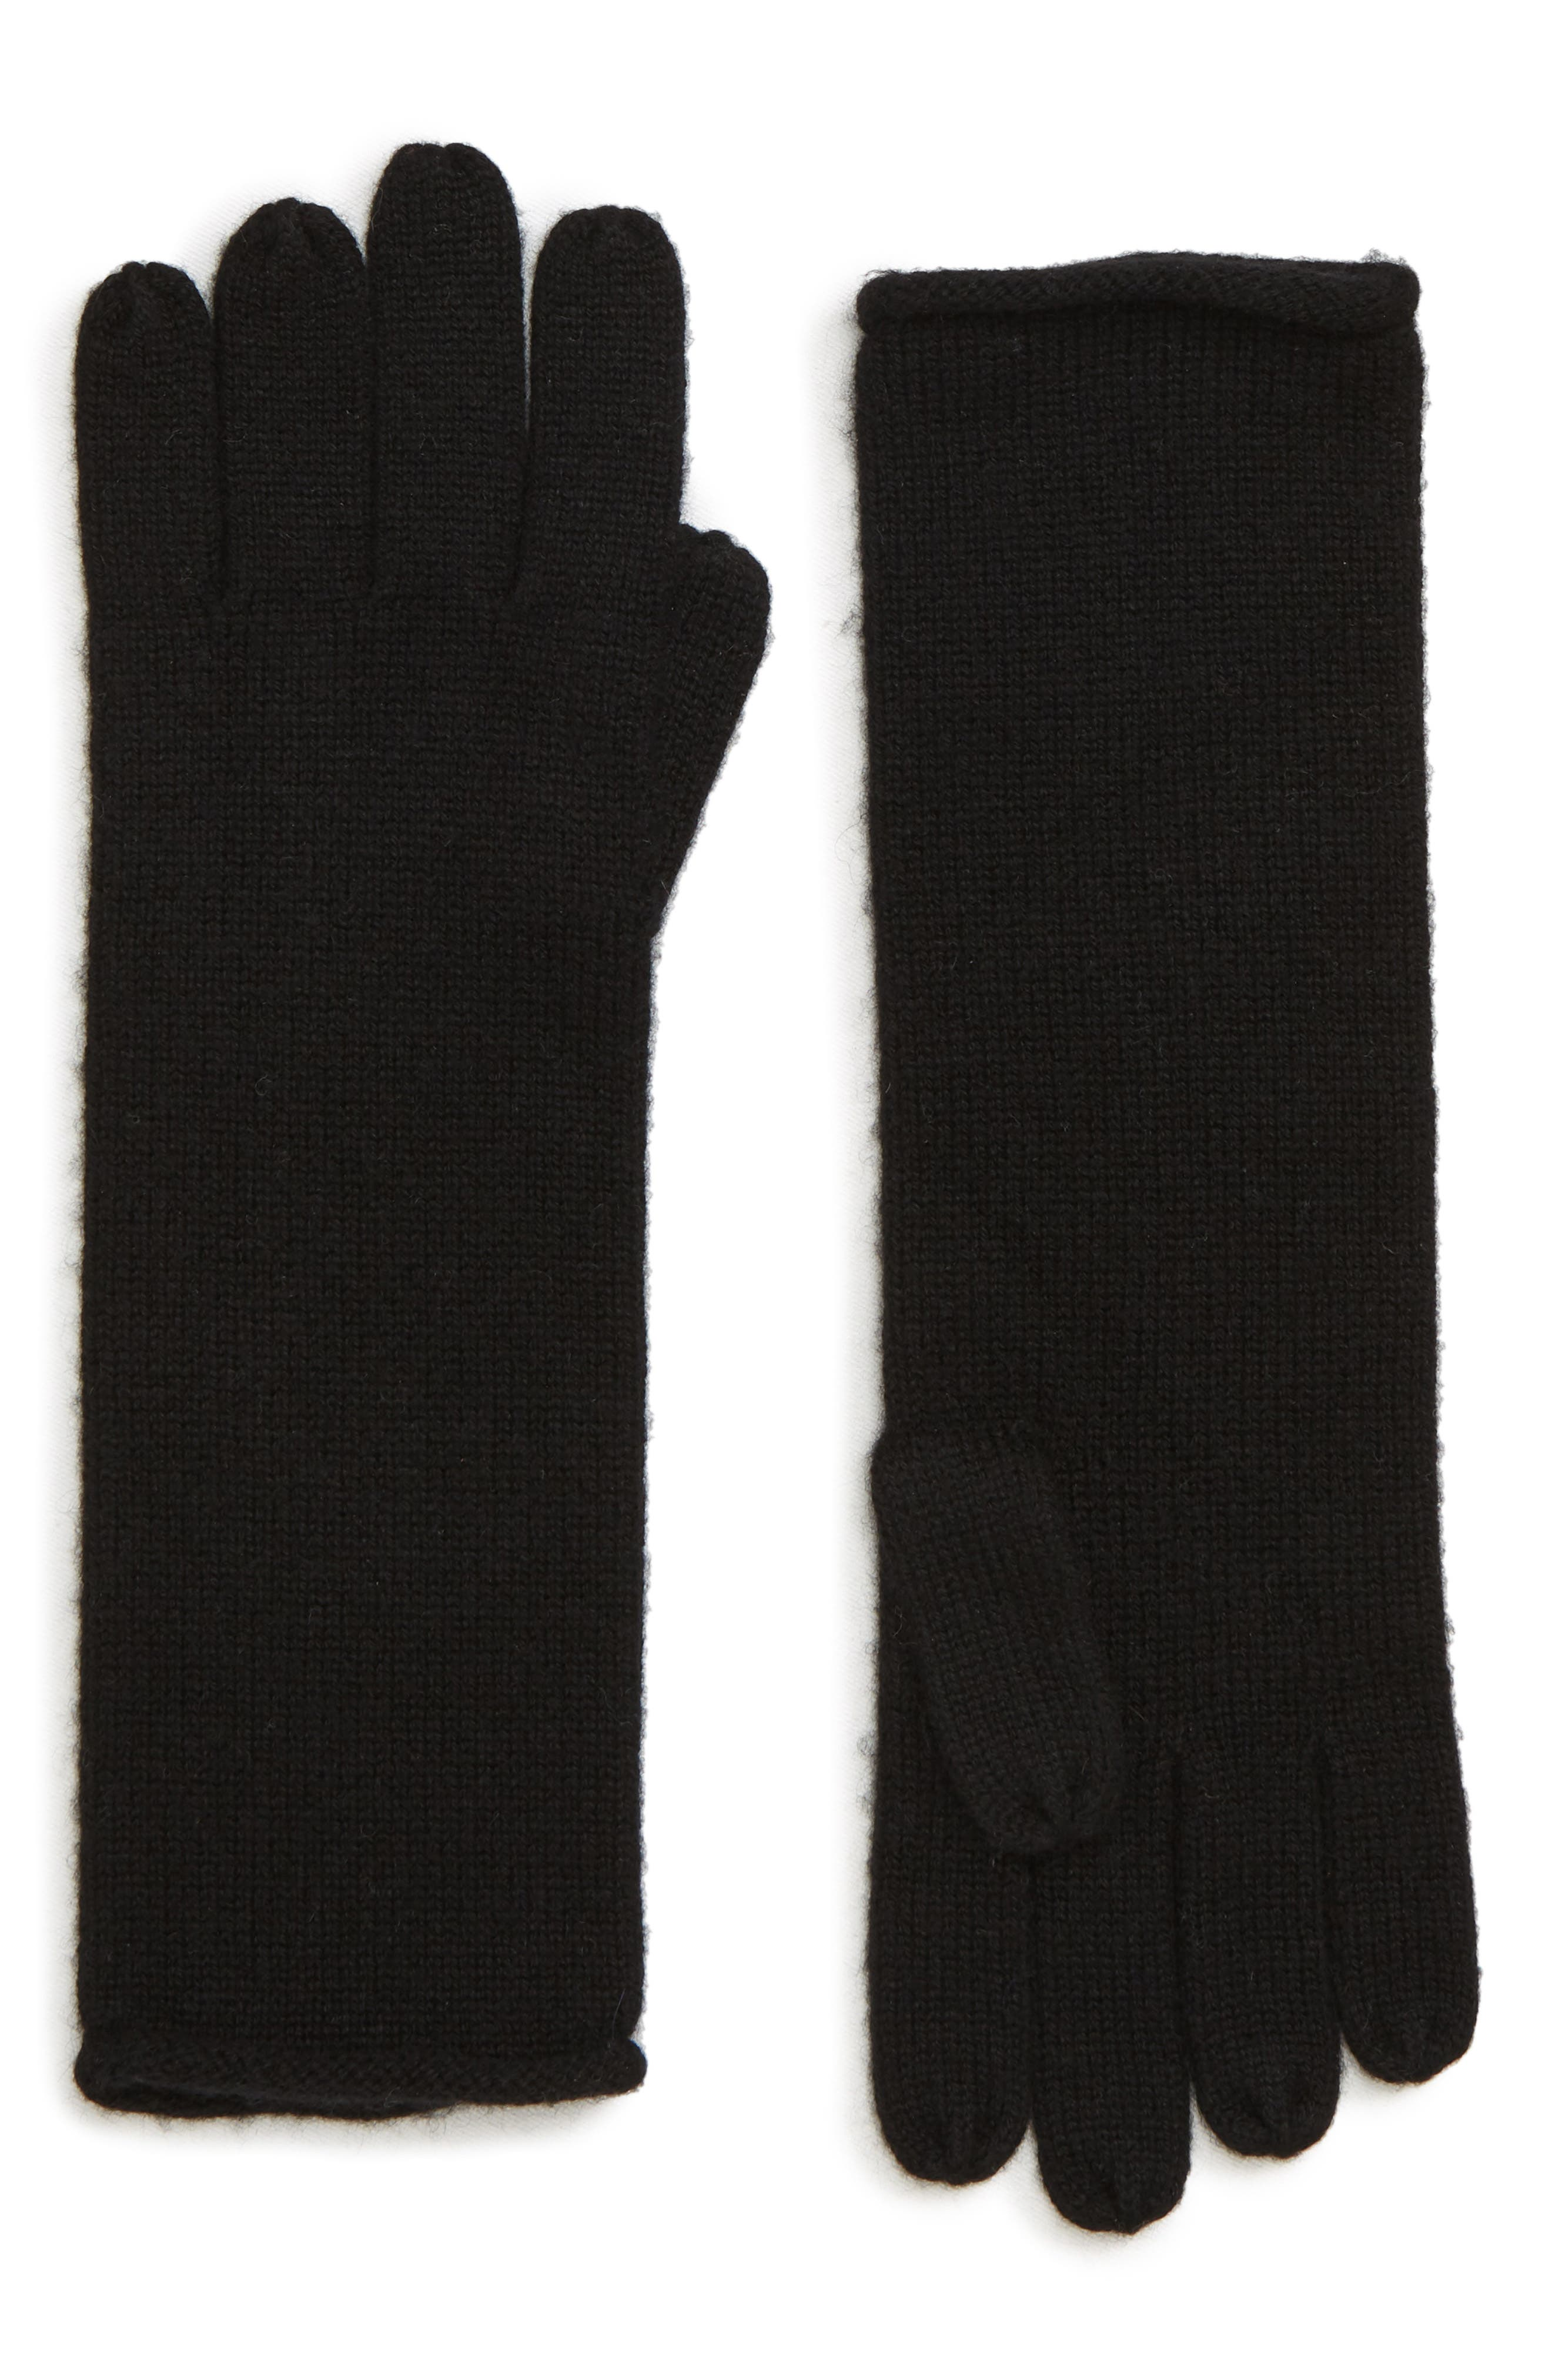 Rolled Edge Gloves,                             Main thumbnail 1, color,                             BLACK